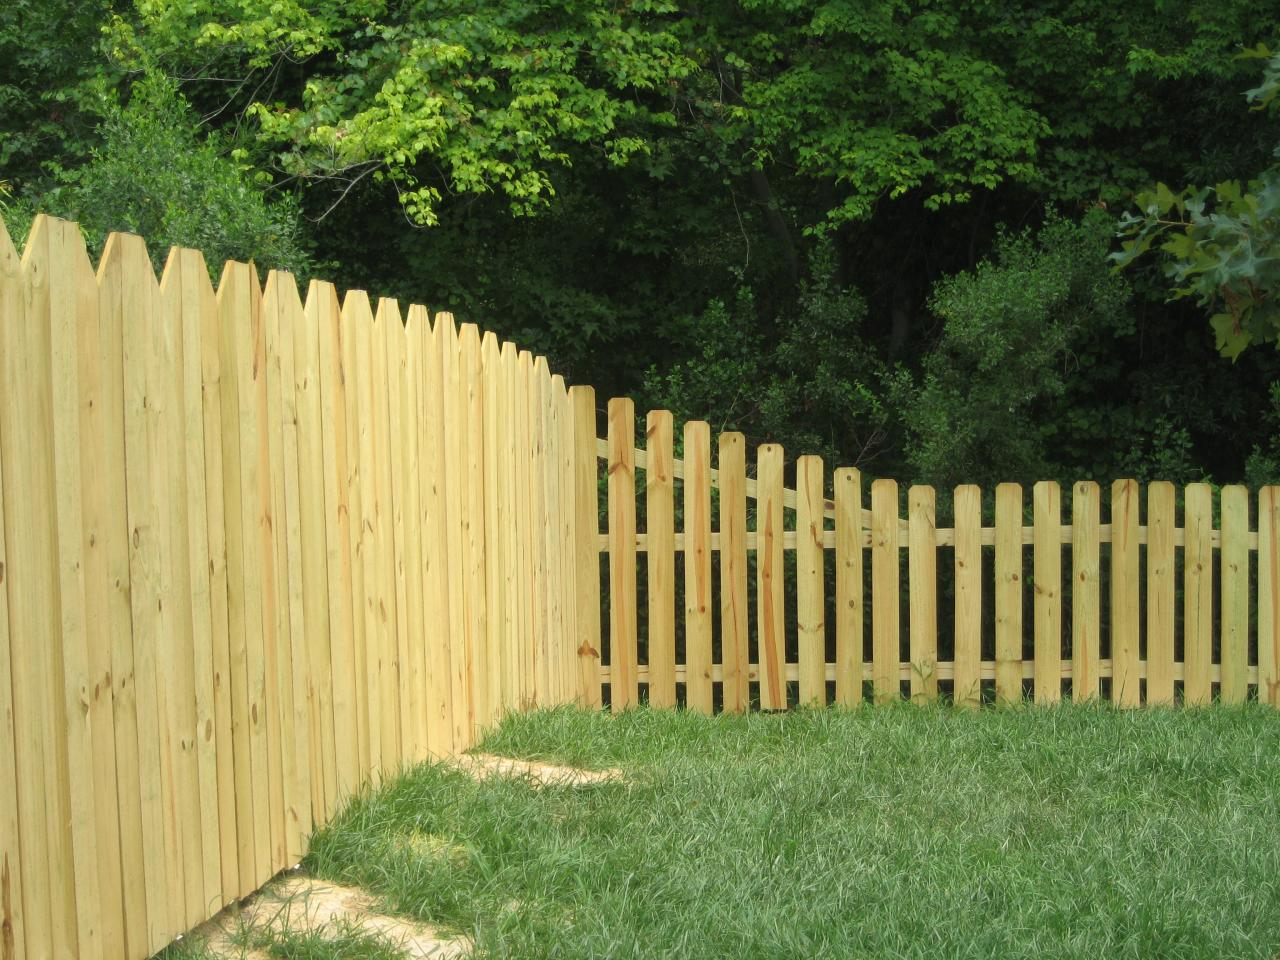 Wood fences sunrise fence llc charlottes fence company wood picket dog ear fence207 baanklon Gallery